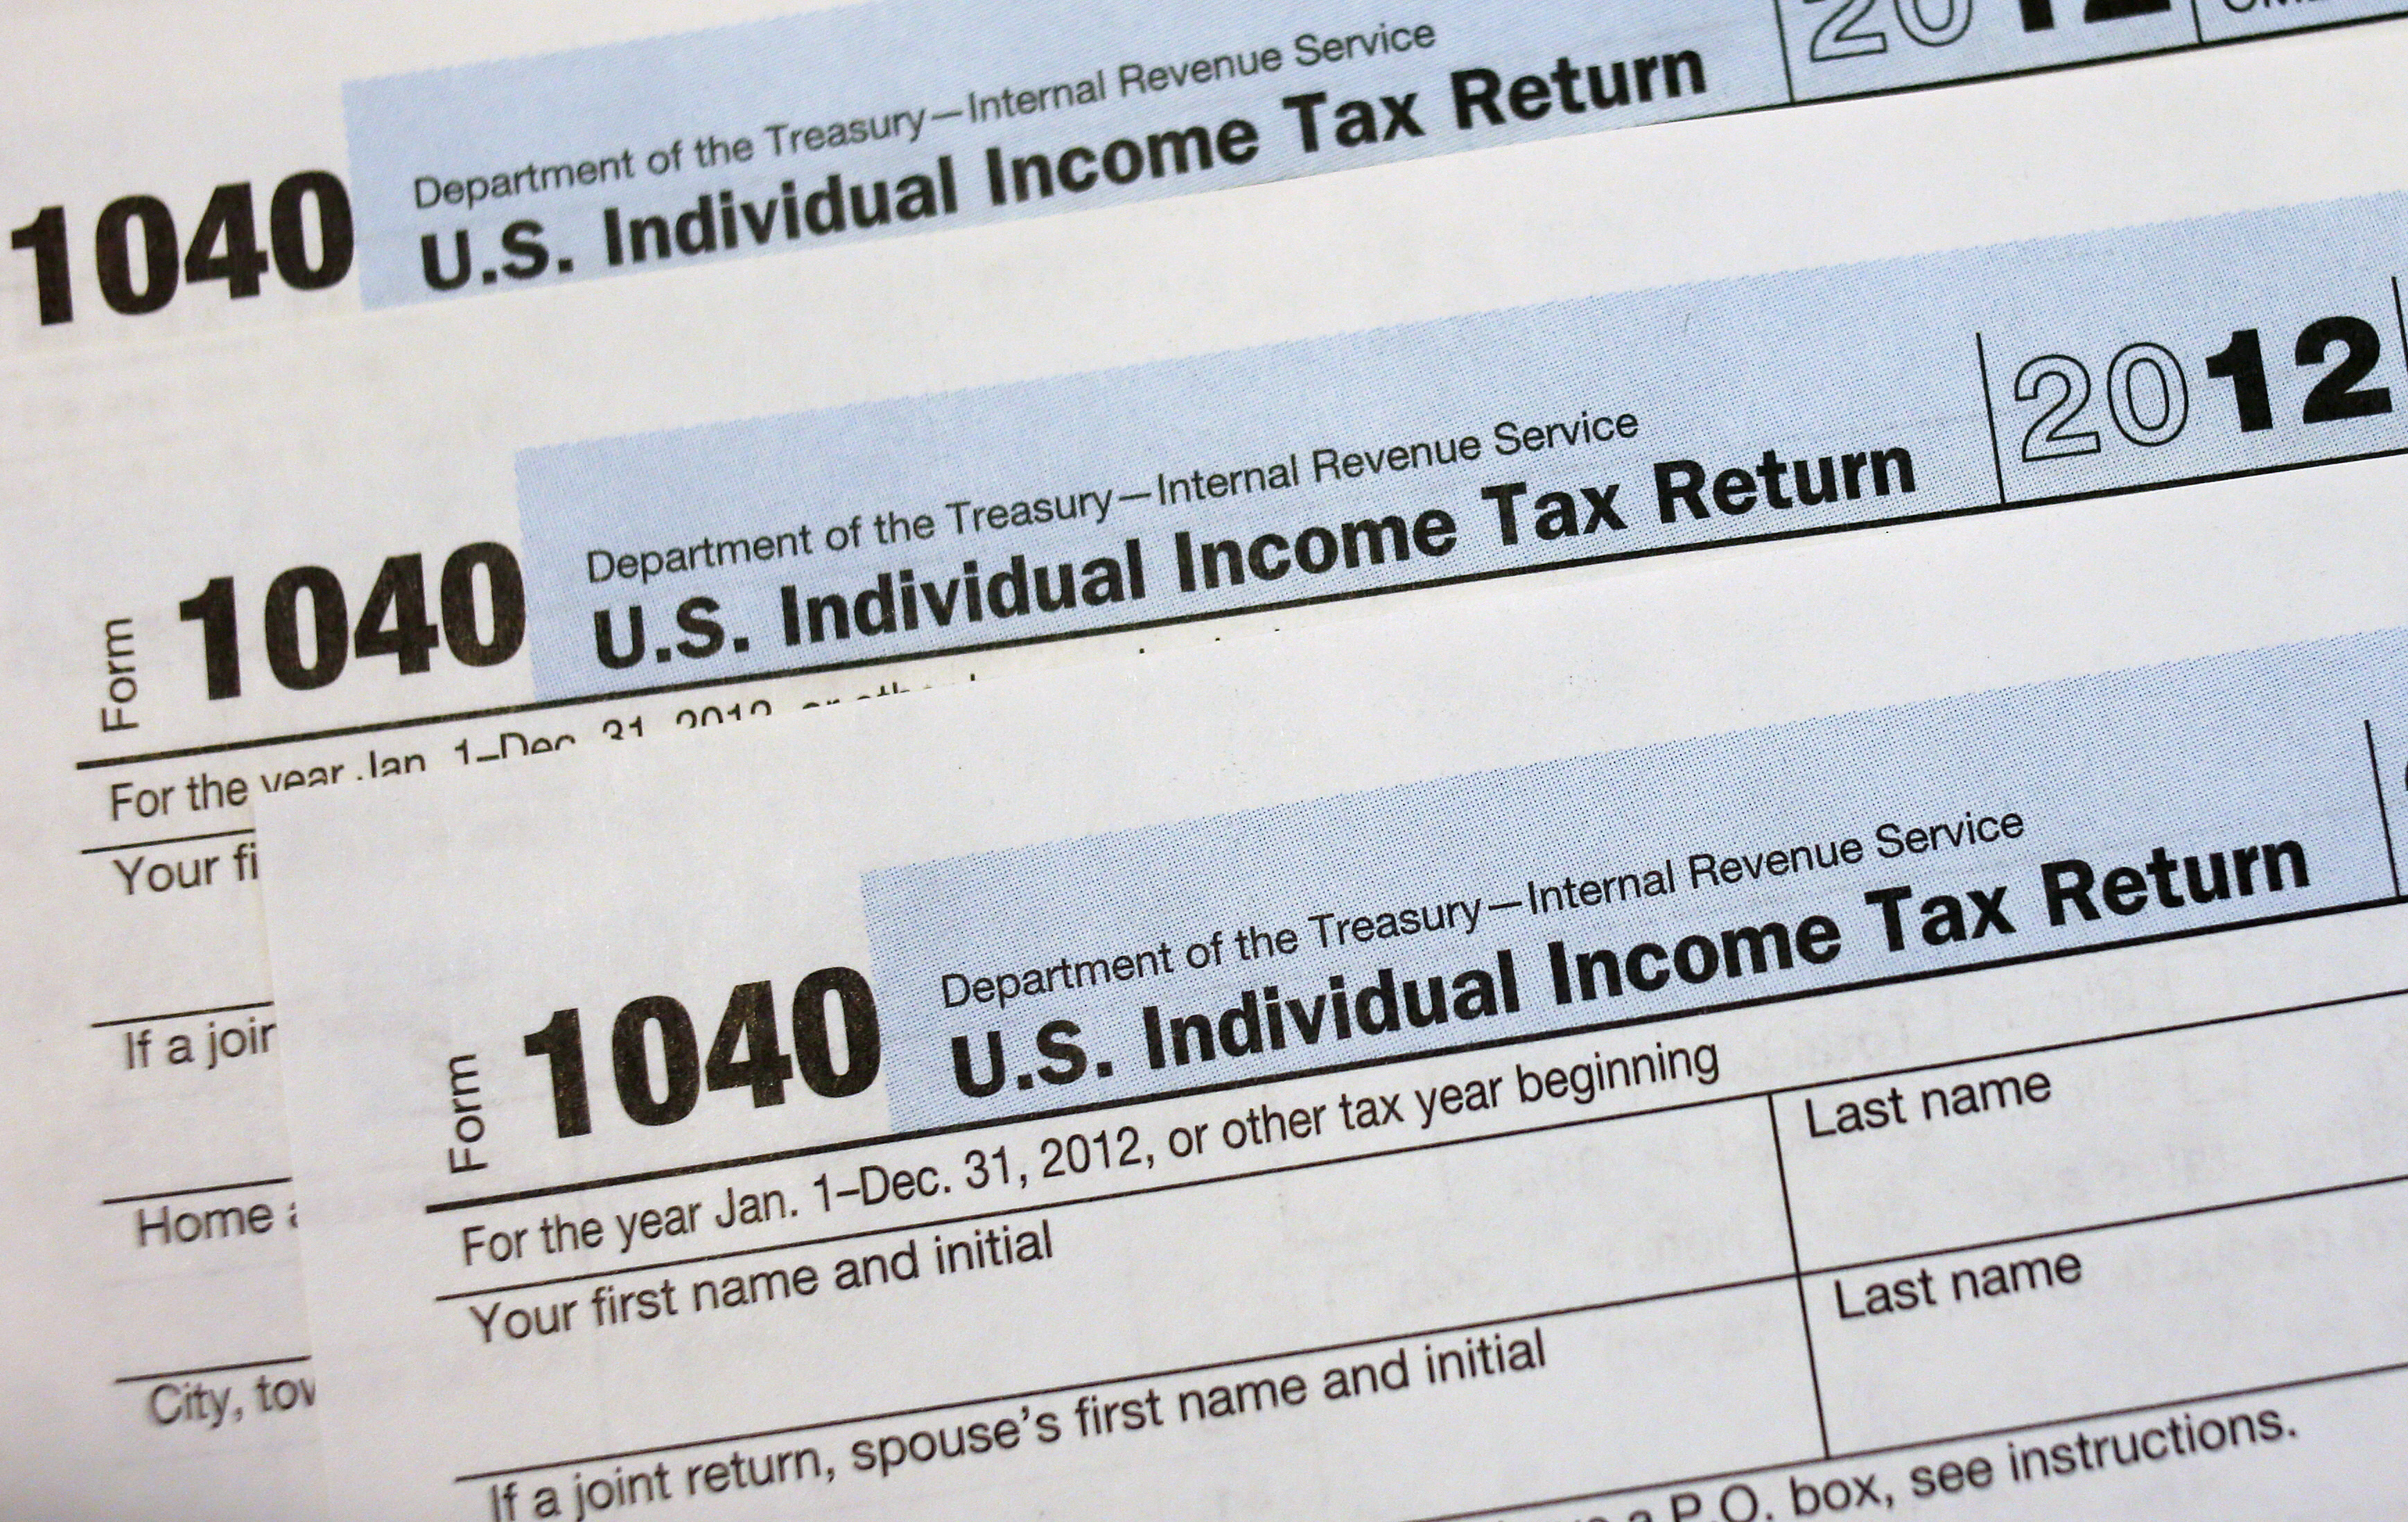 Effects of Income Tax Changes on Economic Growth